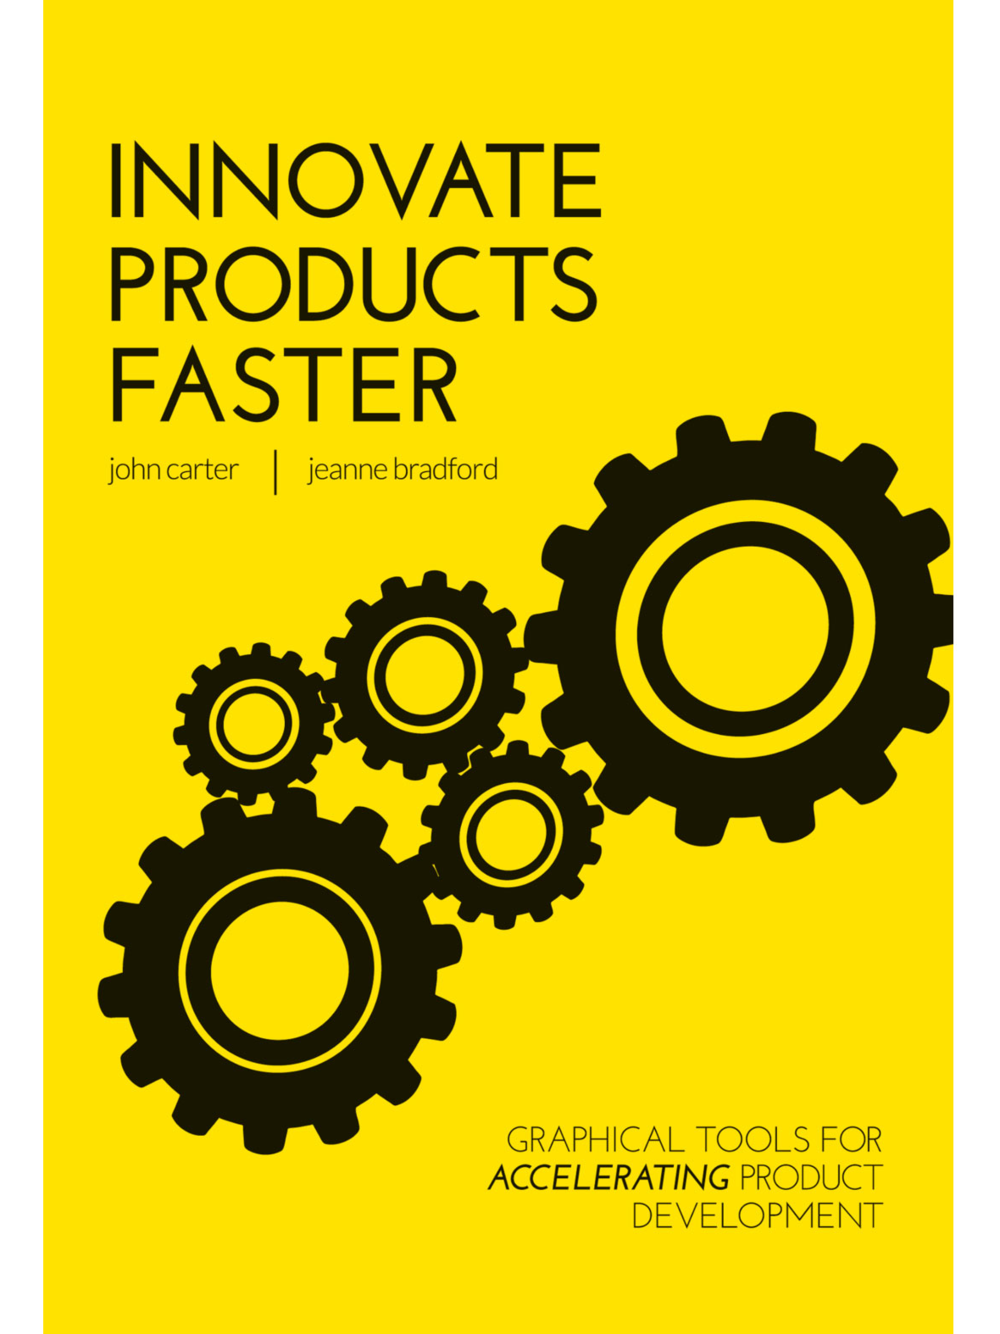 Innovate-products-faster-trans.png